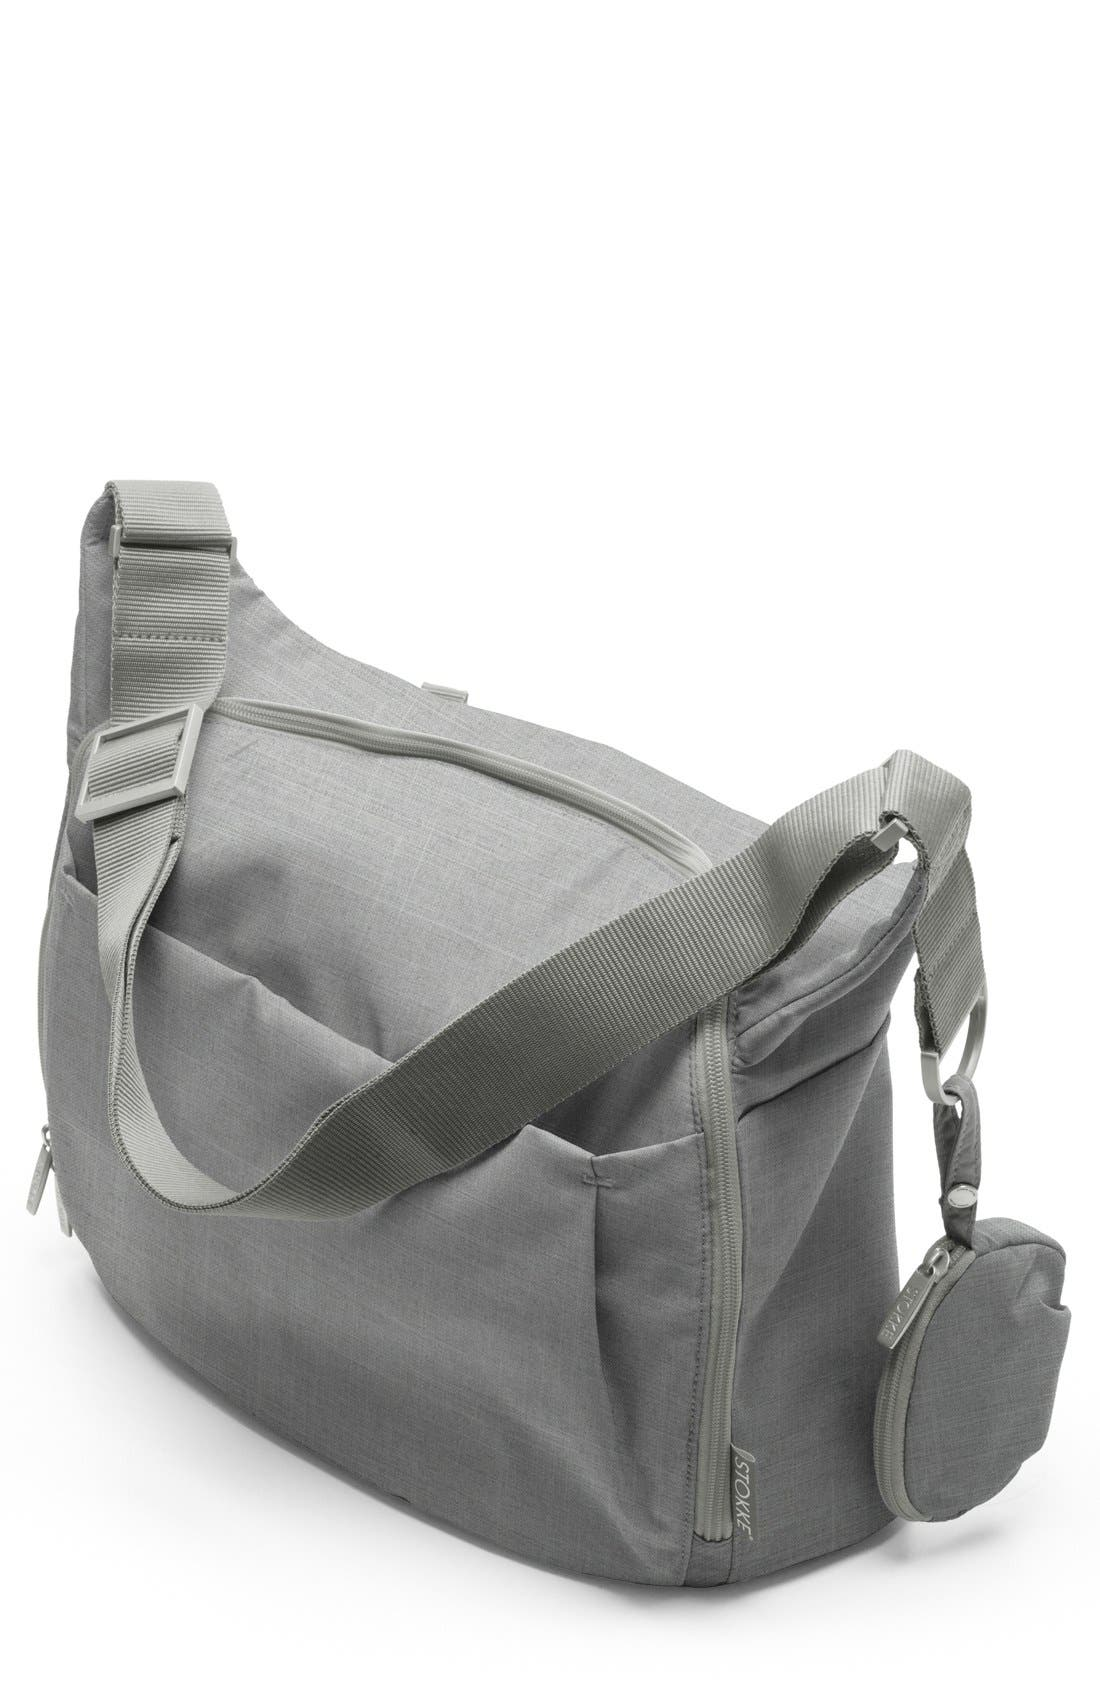 Main Image - Stokke Baby 'Xplory®' Changing Bag